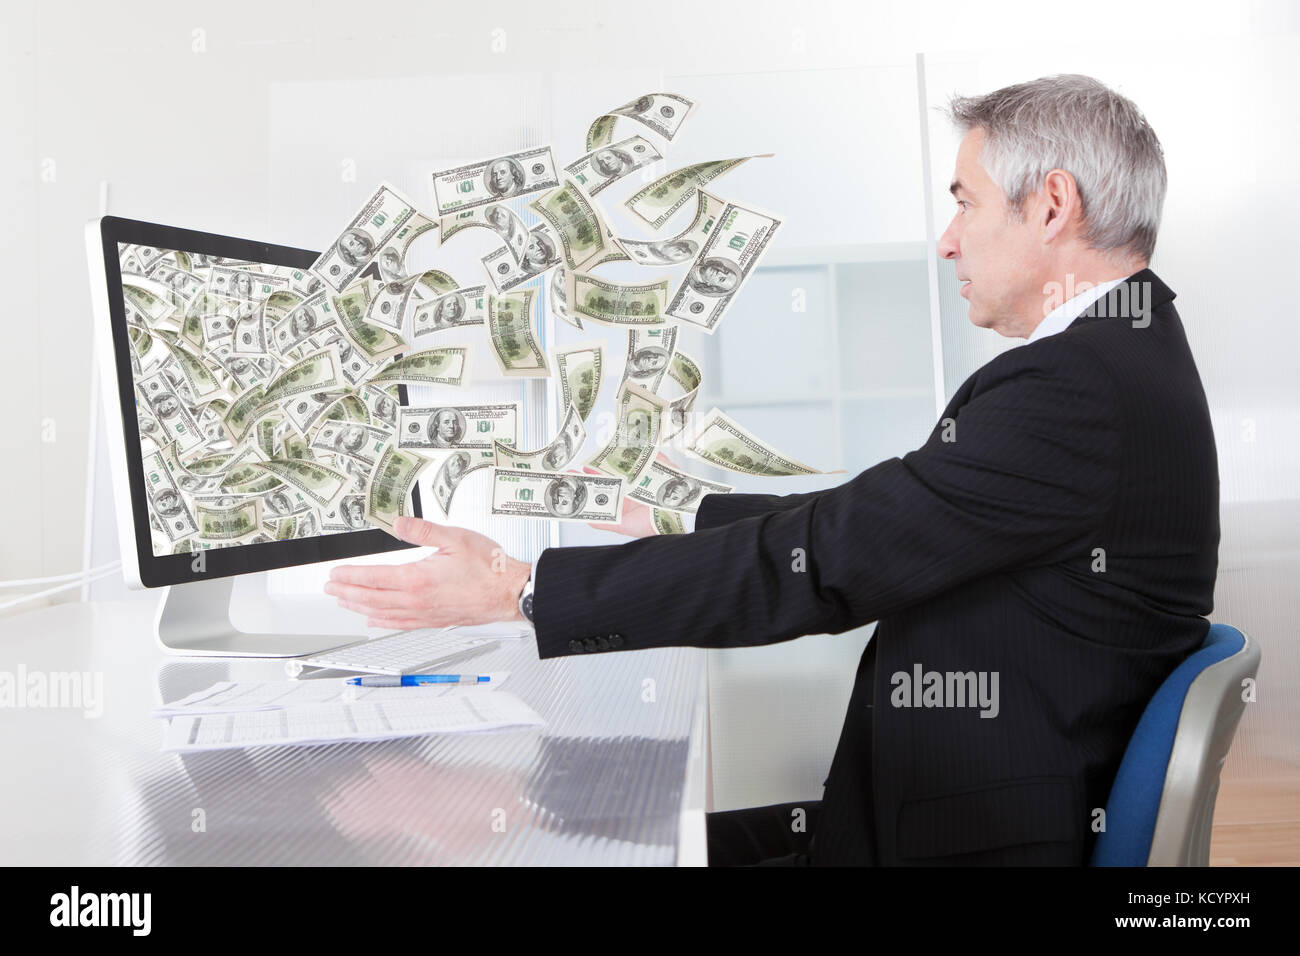 Businessman Earning Lots Of Cash In Internet - Stock Image